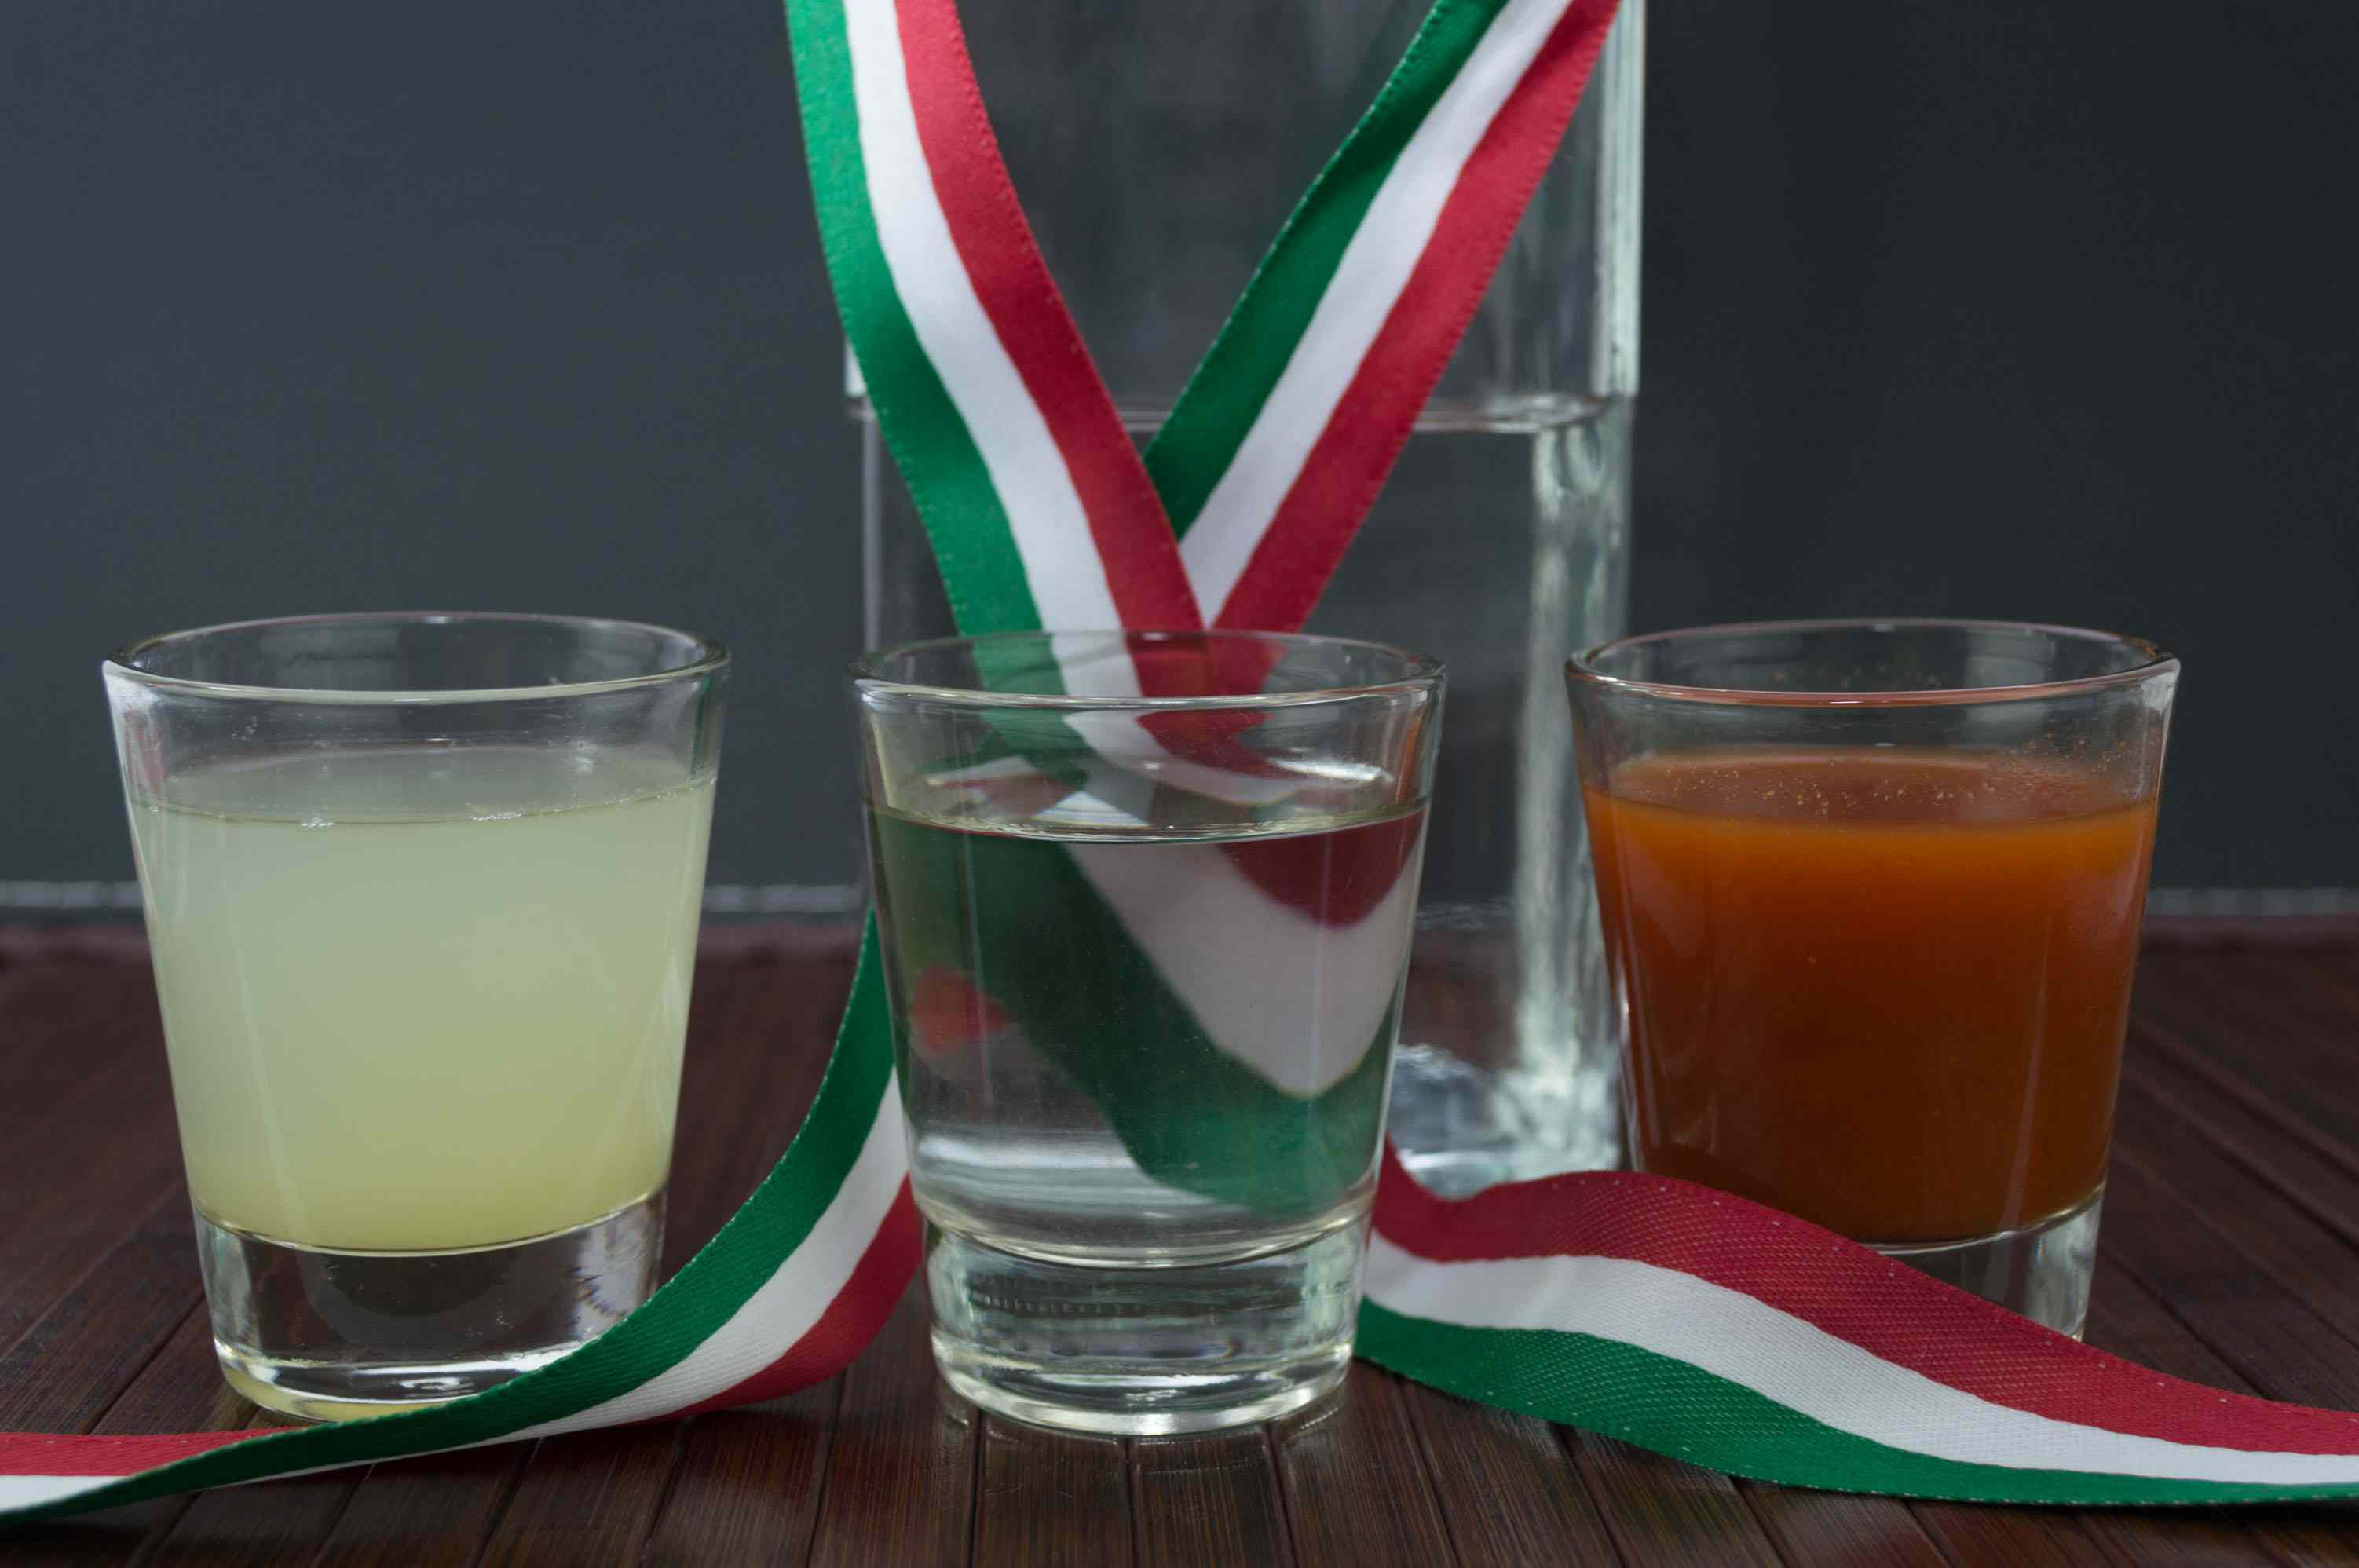 Mexican flag shots: lime juice, tequila and sangrita